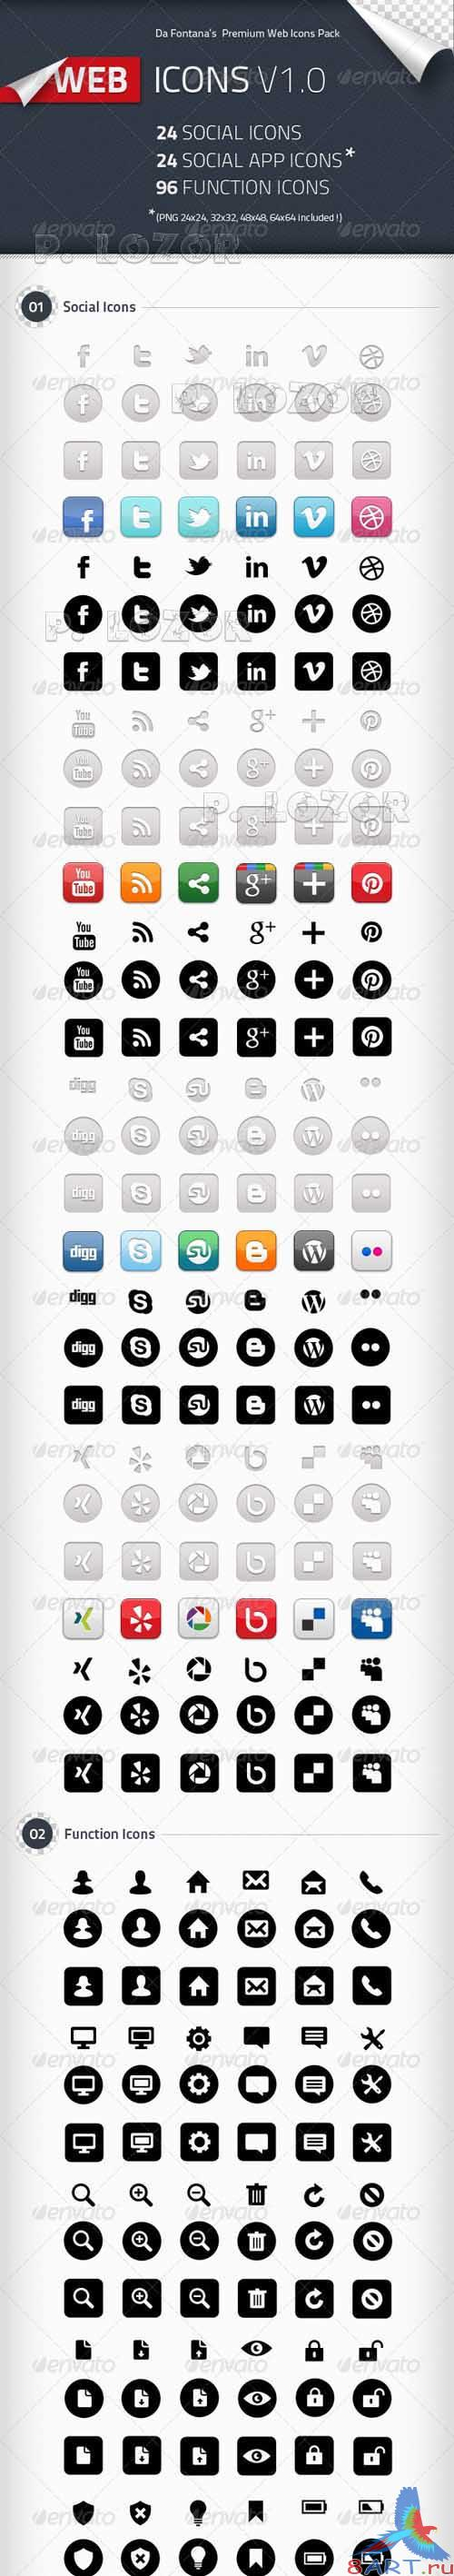 Social Icons Social App Icons Function Icons